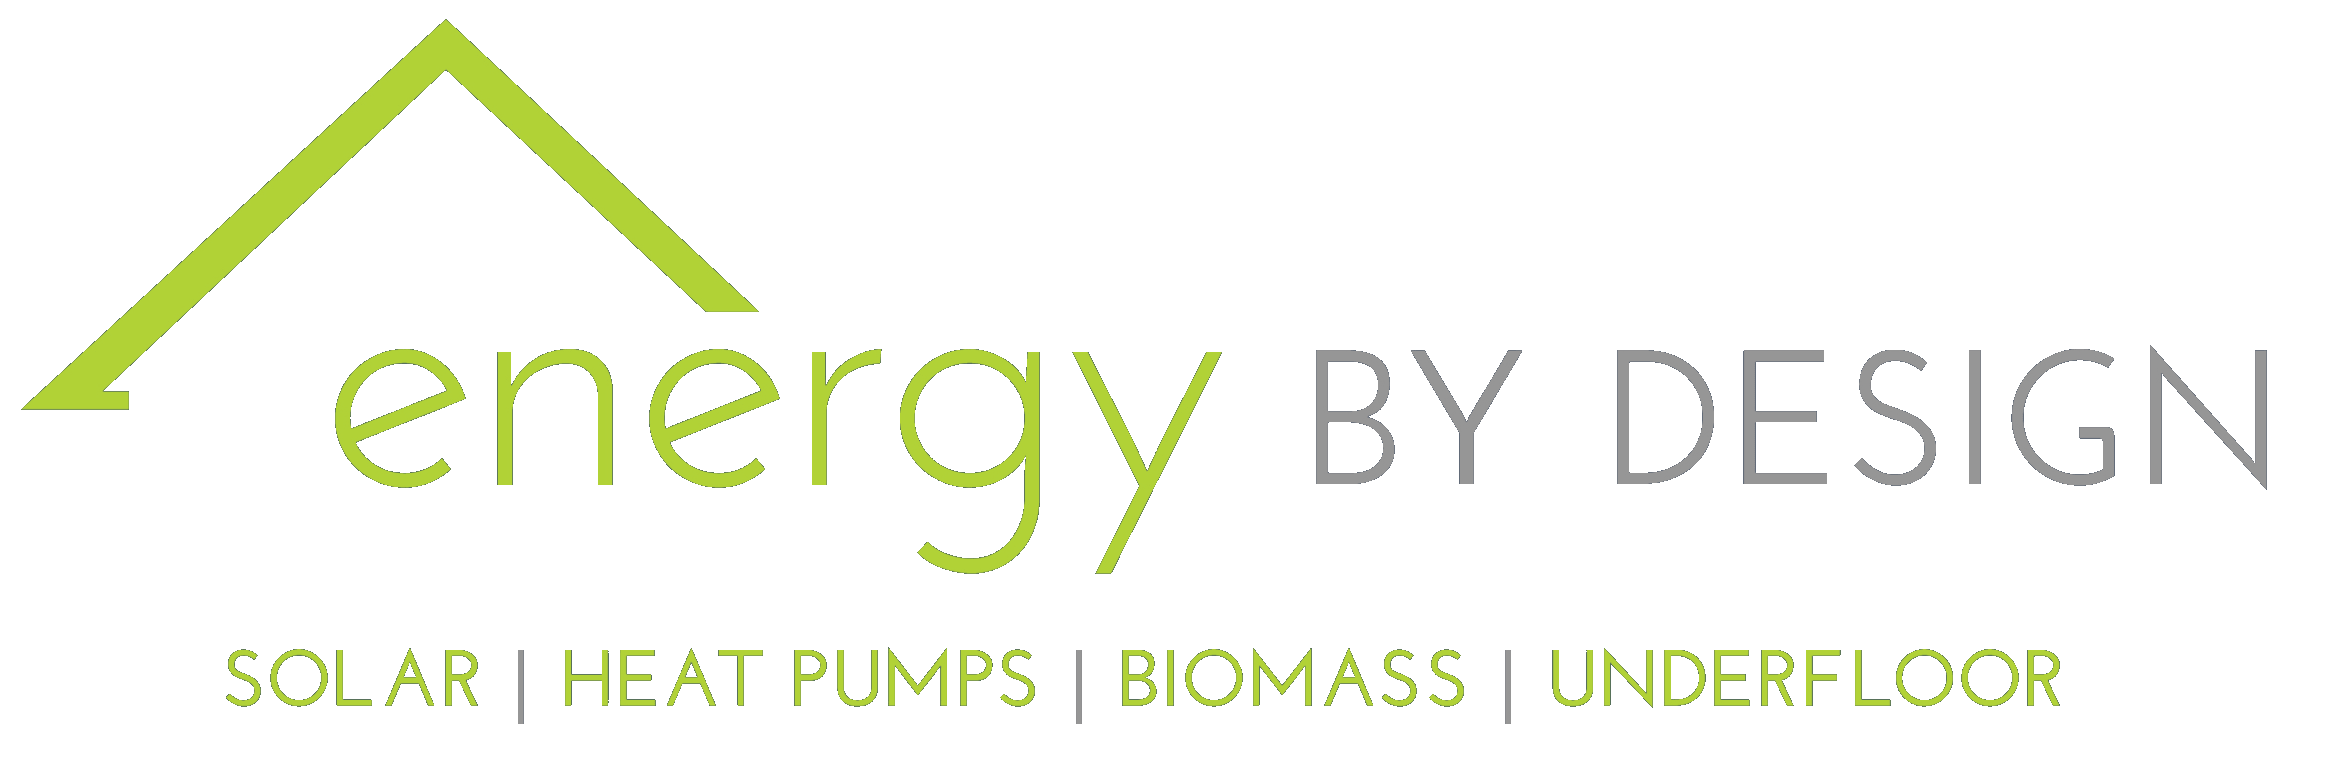 Energy By Design logo